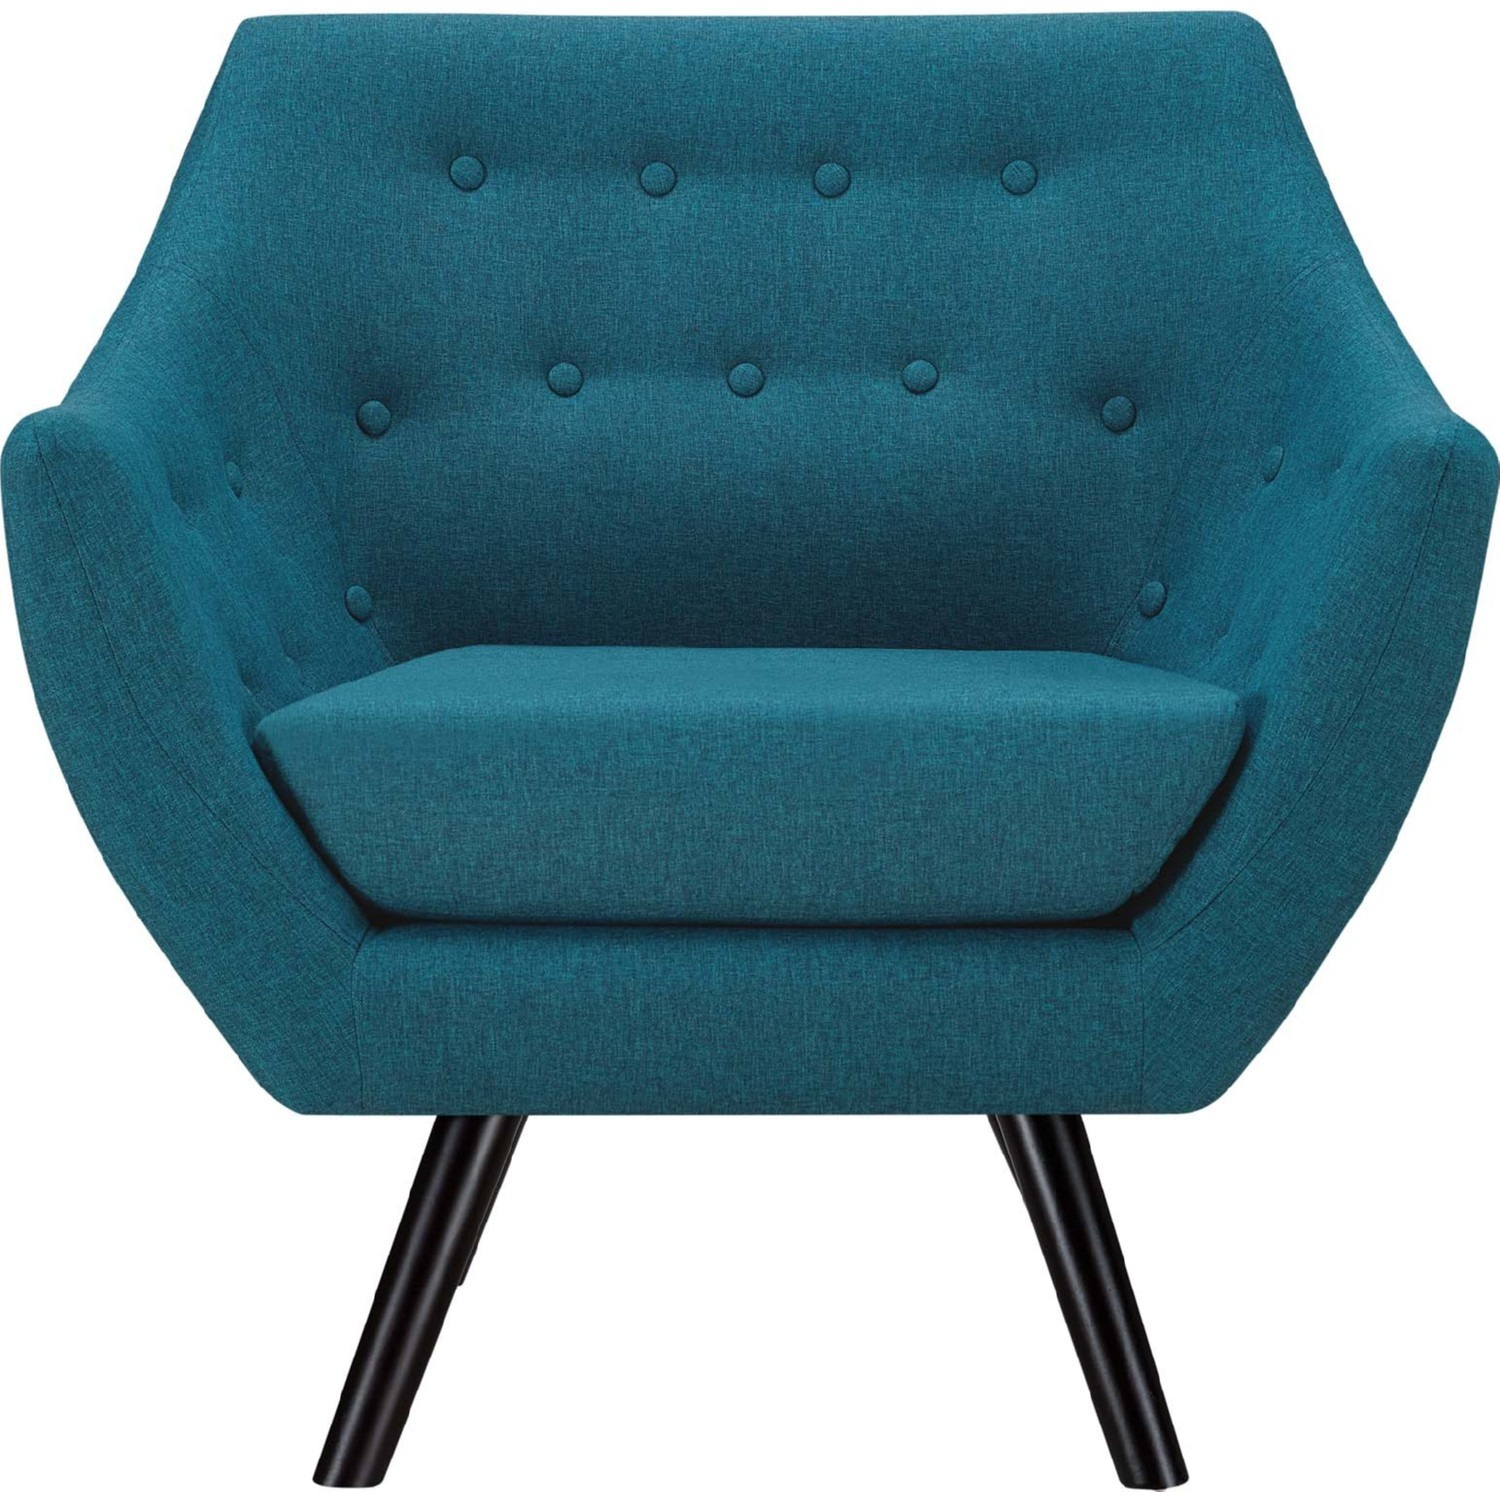 Armchair In Teal Fabric W/ Tufted Buttons - image-0